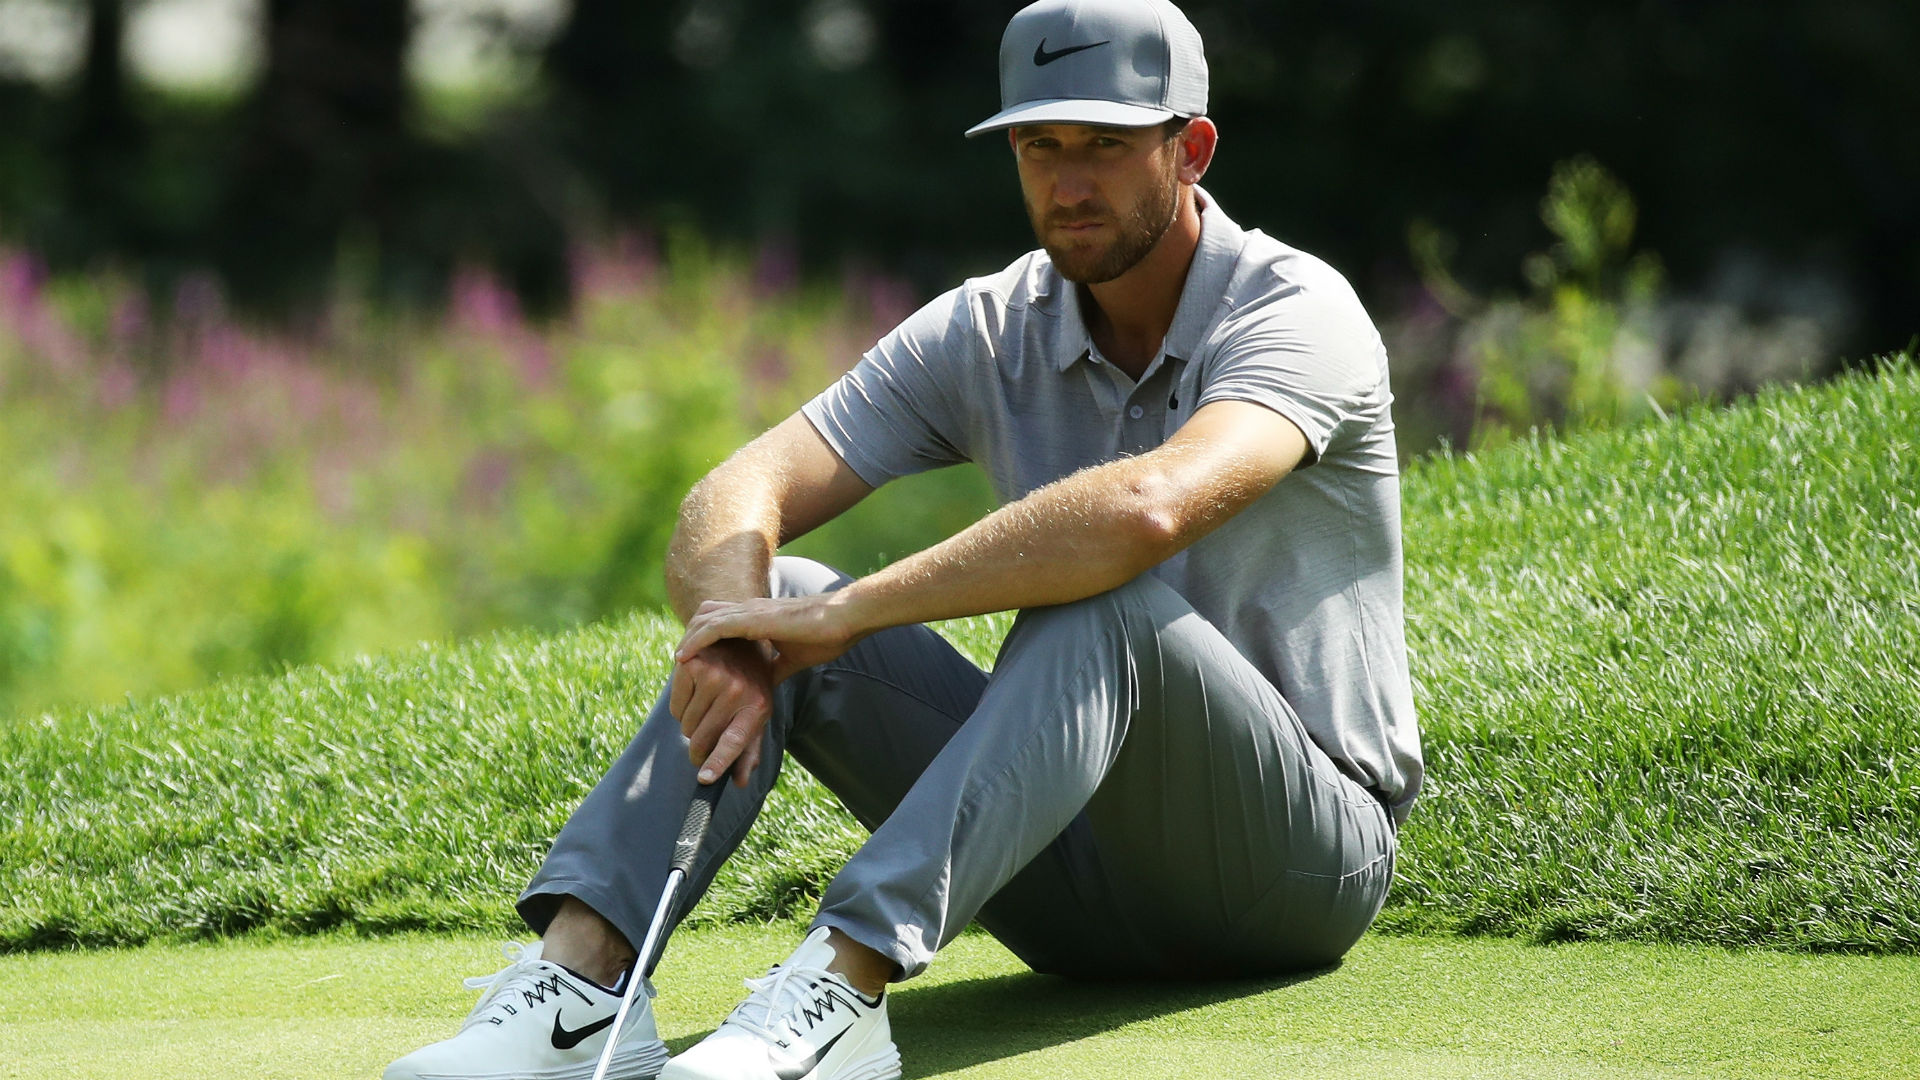 kevin chappell will undergo microdiscectomy surgery